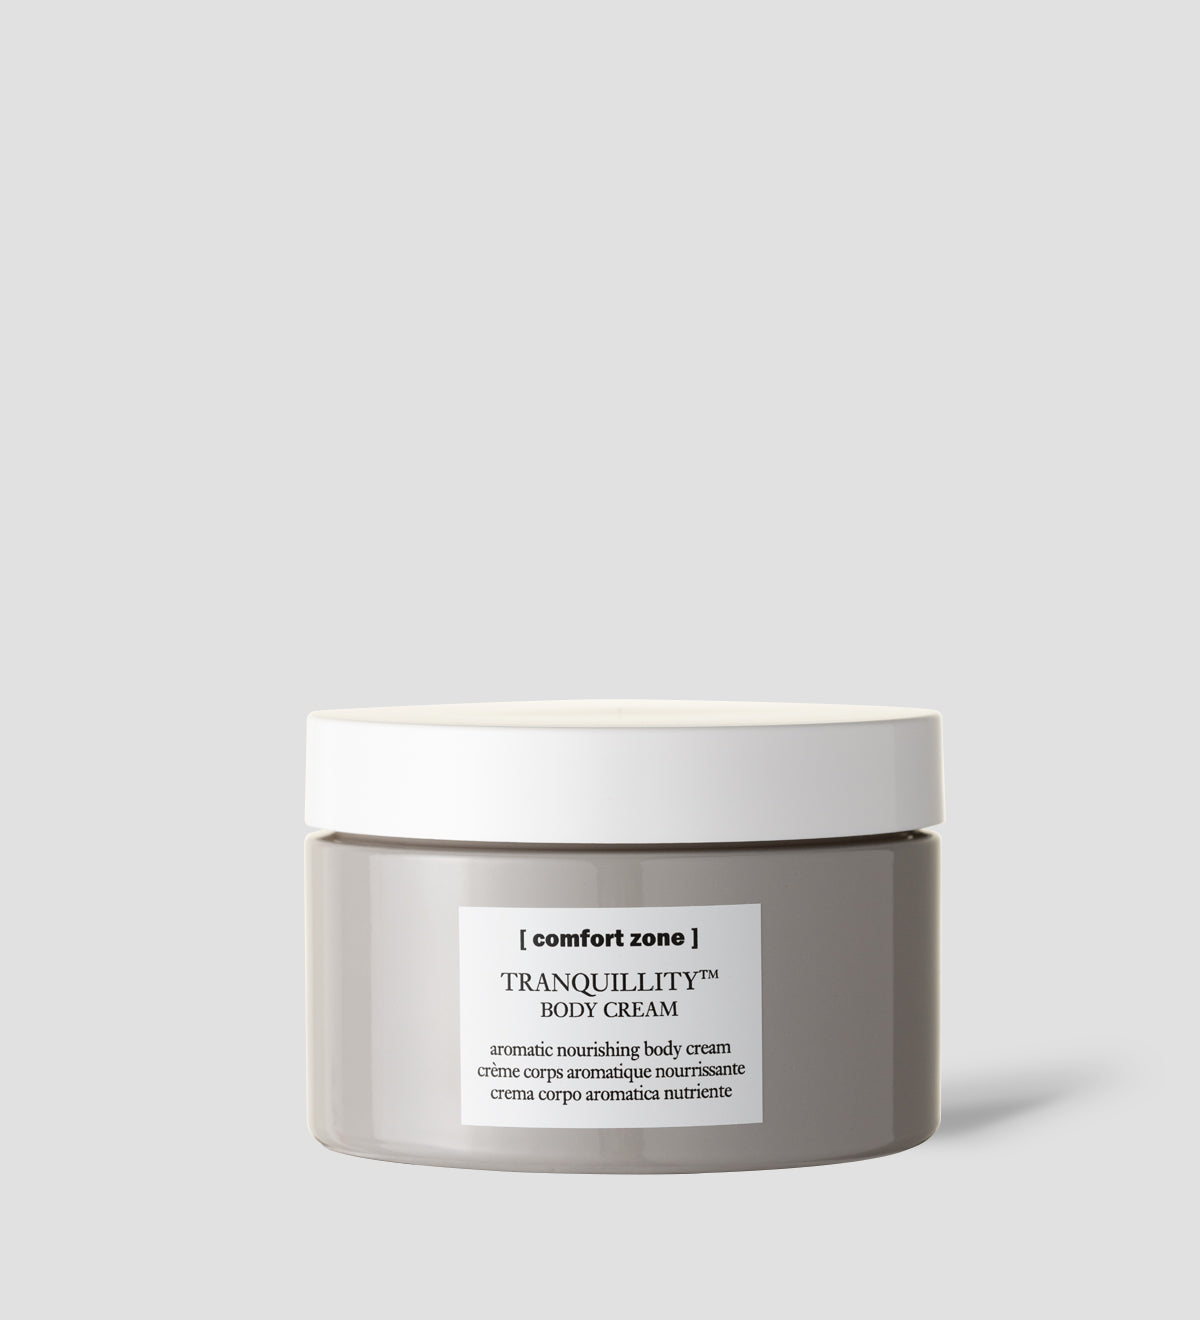 Comfort Zone: TRANQUILLITY™ BODY CREAM Aromatic nourishing body cream-1